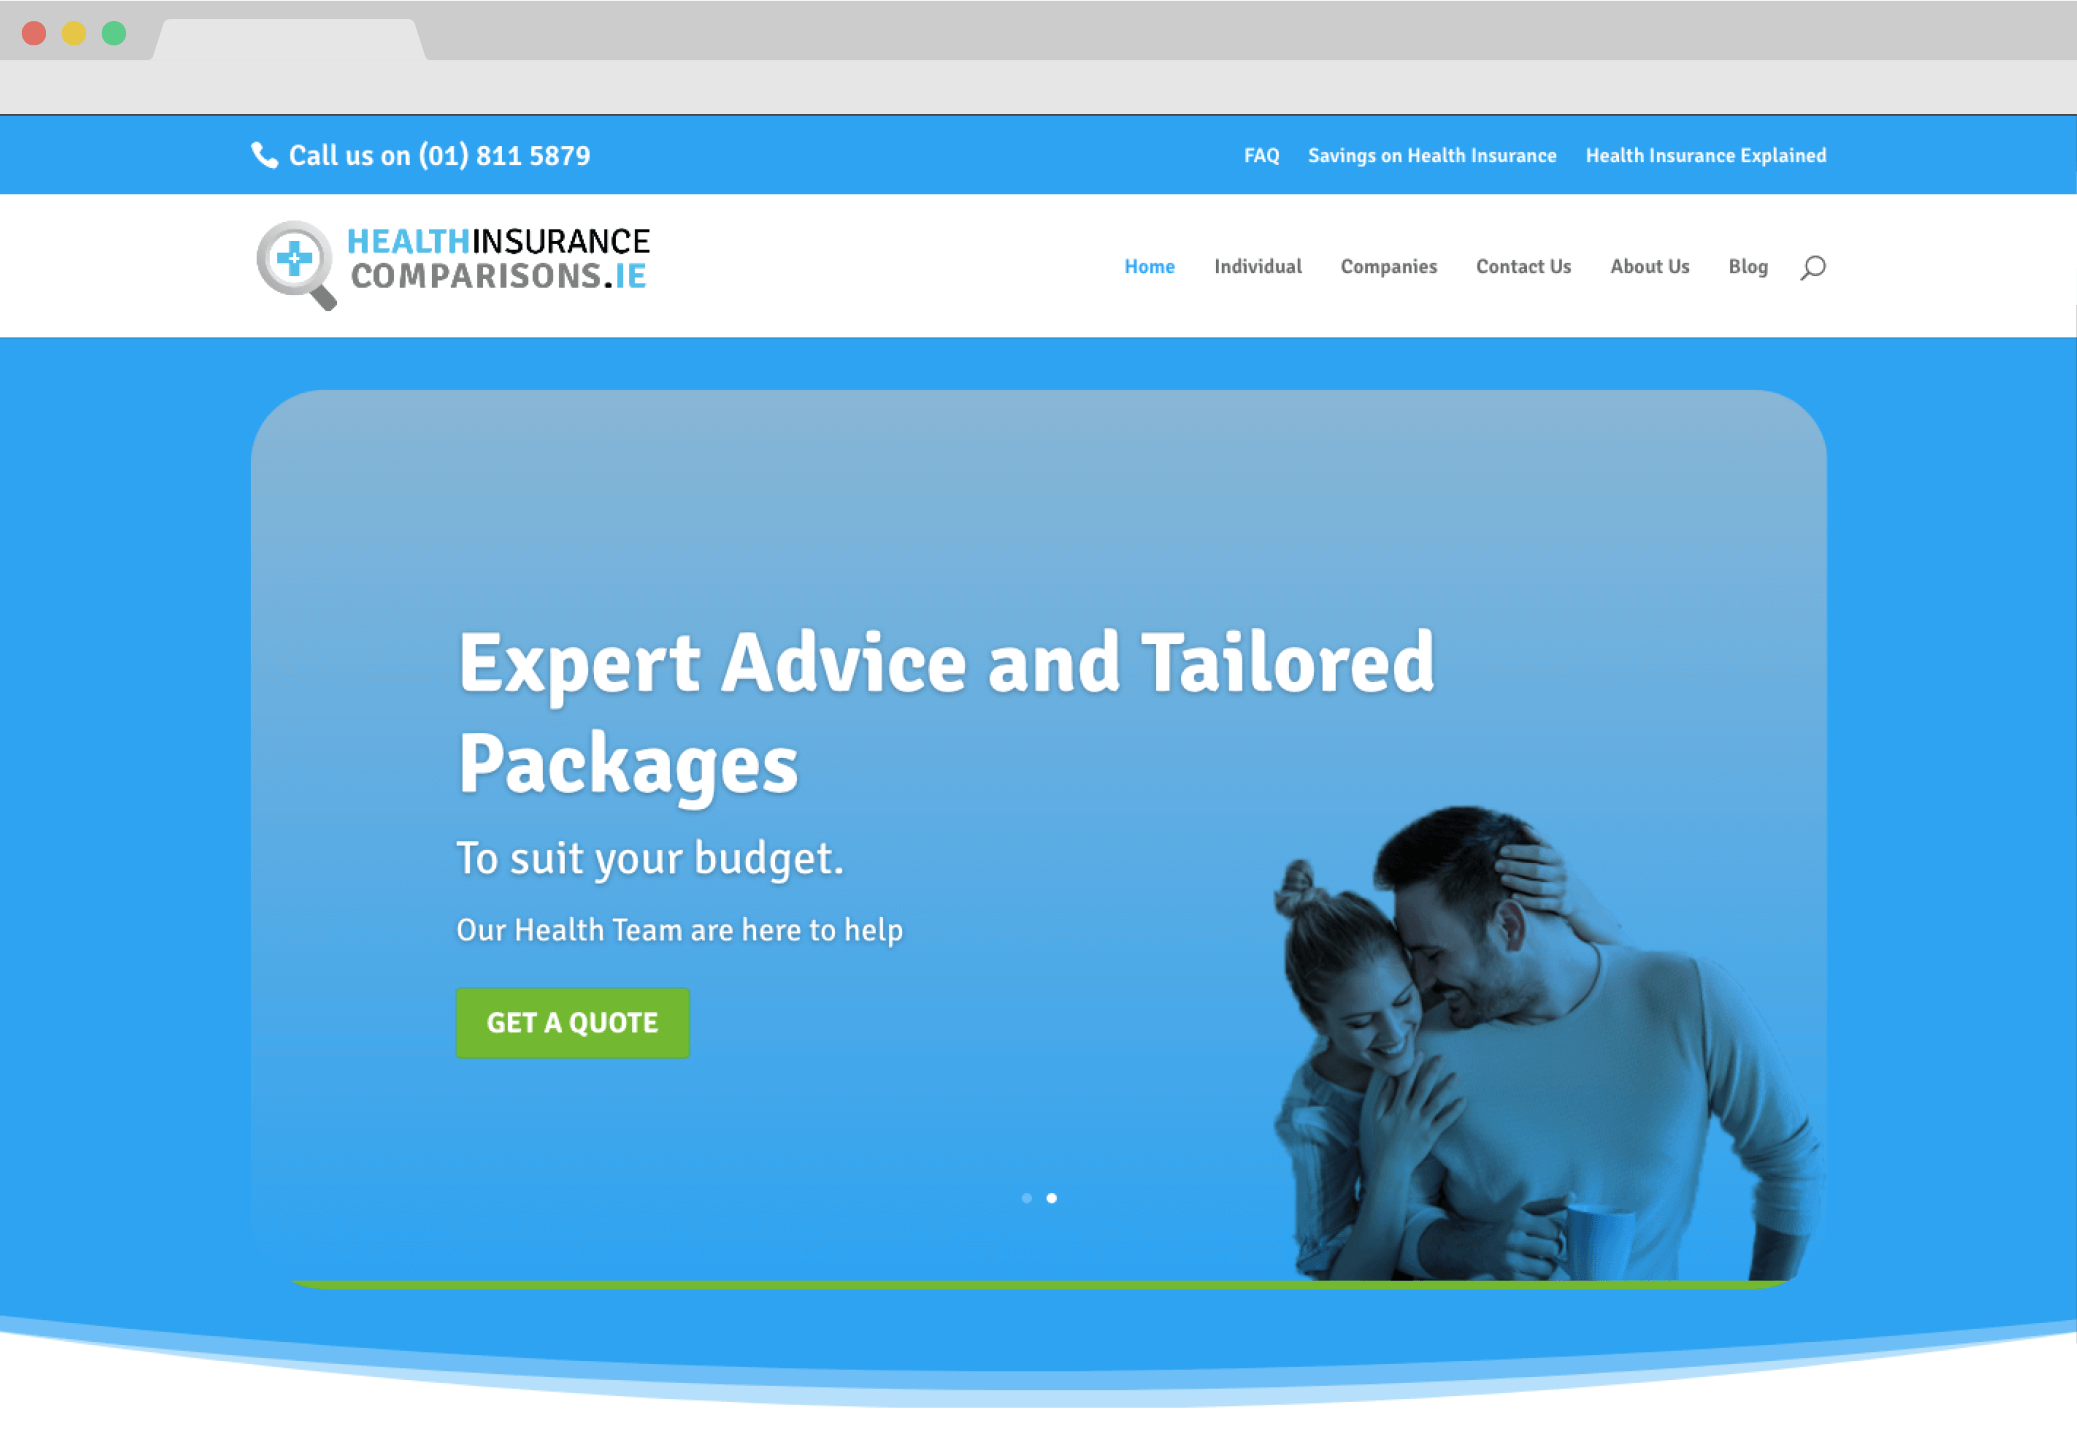 Health Insurance Compasion Website Screengrab